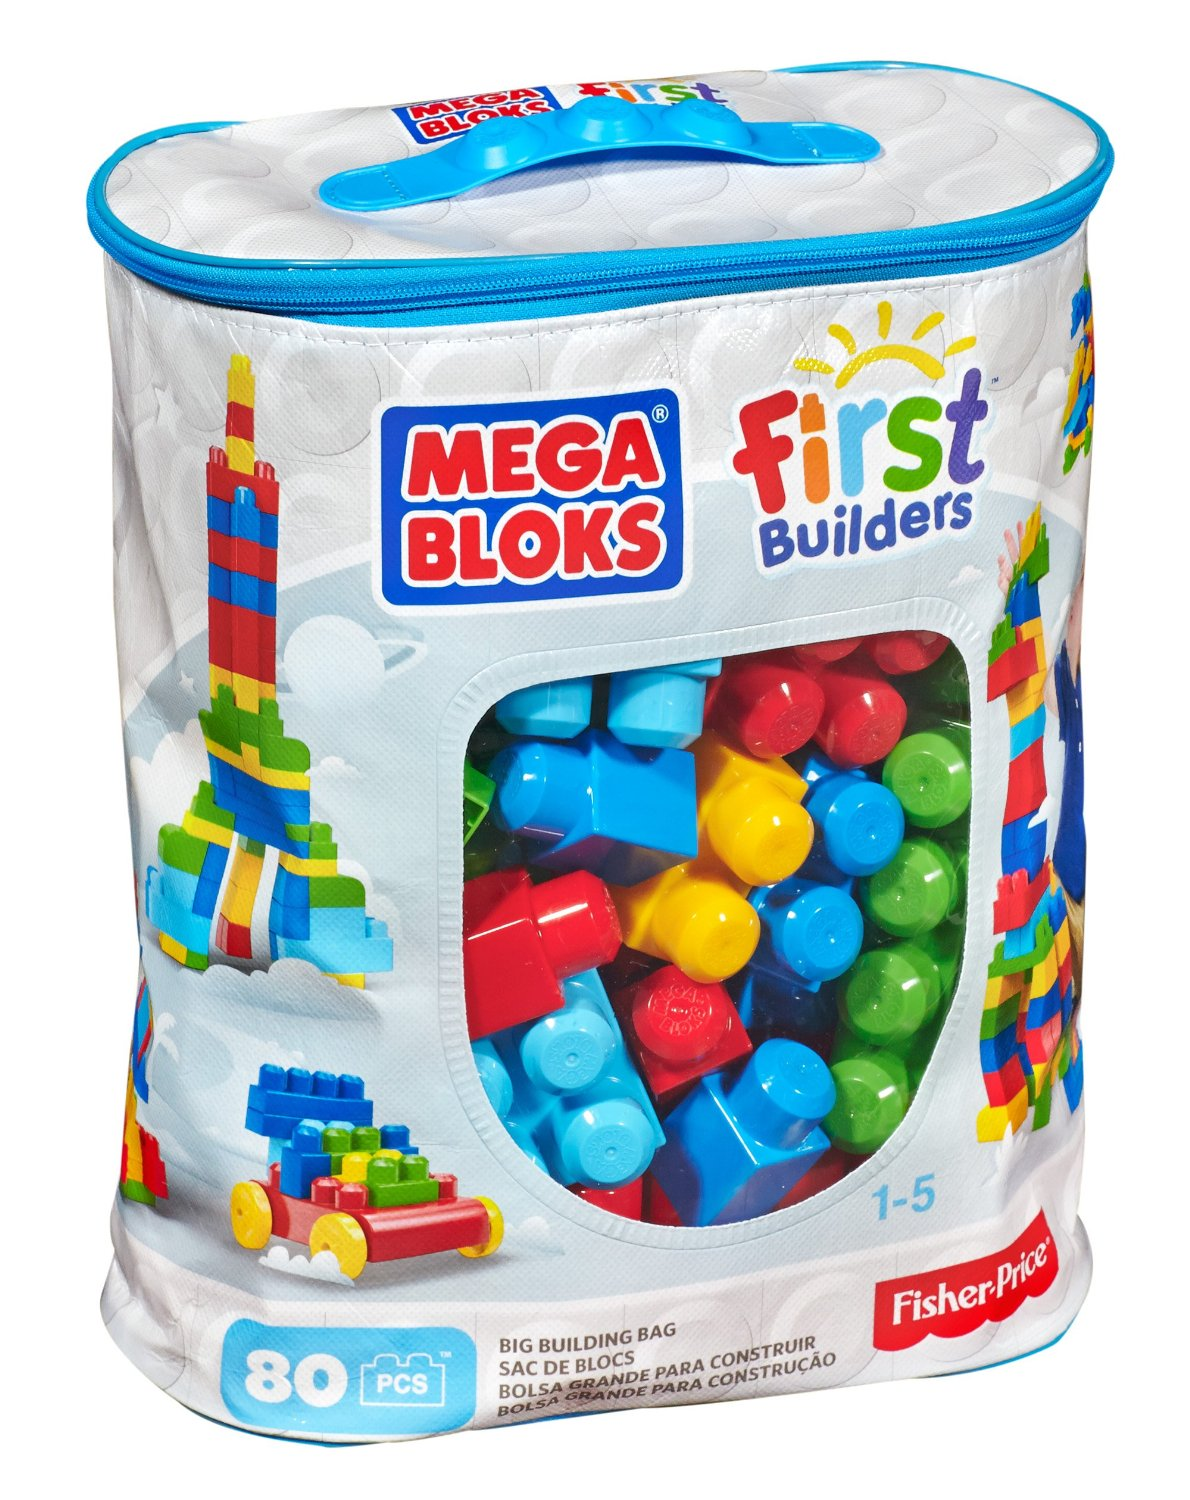 Hot Amazon Baby Toy Deals Top Fisher Price Block Mega Blocks For